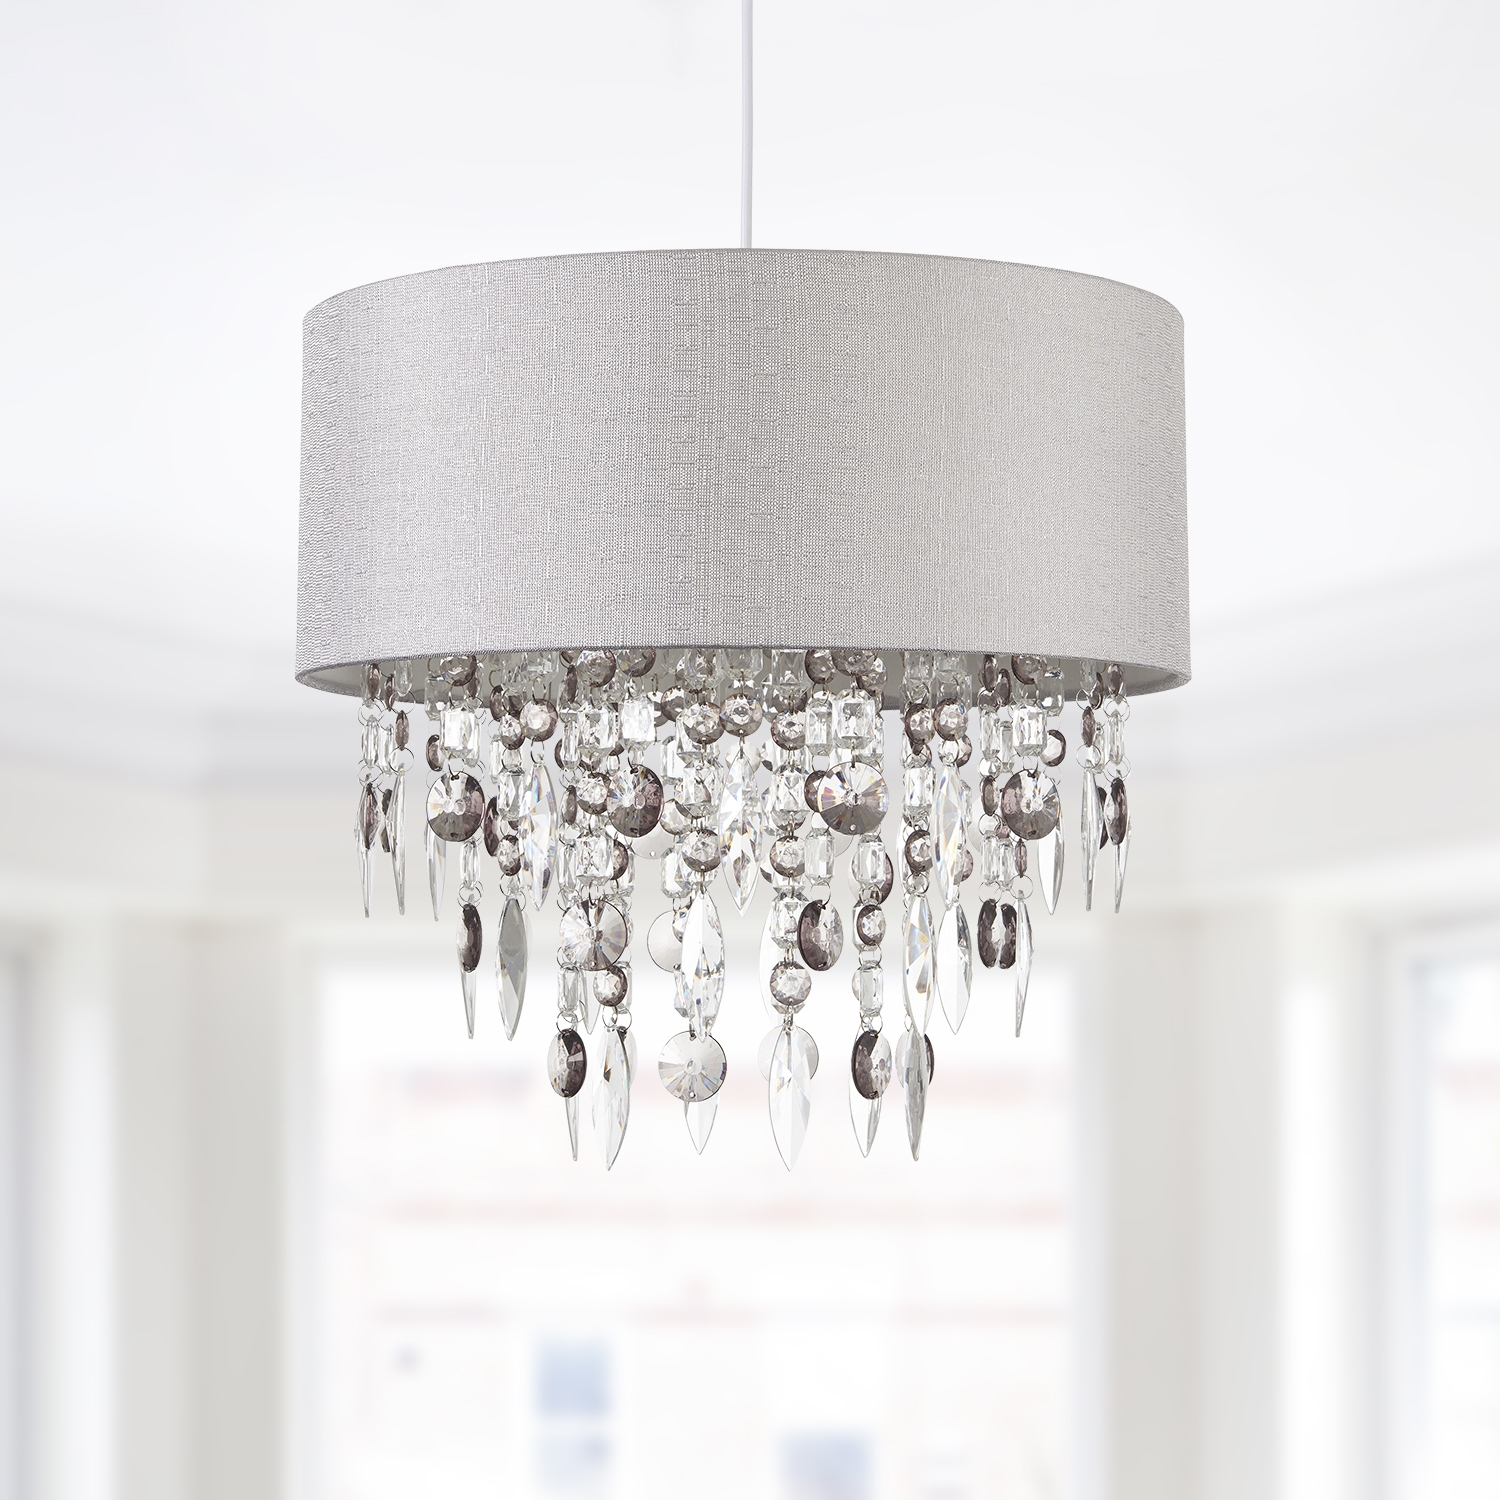 Ceiling Light Shades Details About Modern Large 40cm Easy Fit Jewelled Grey Ceiling Light Chandelier Lamp Shade